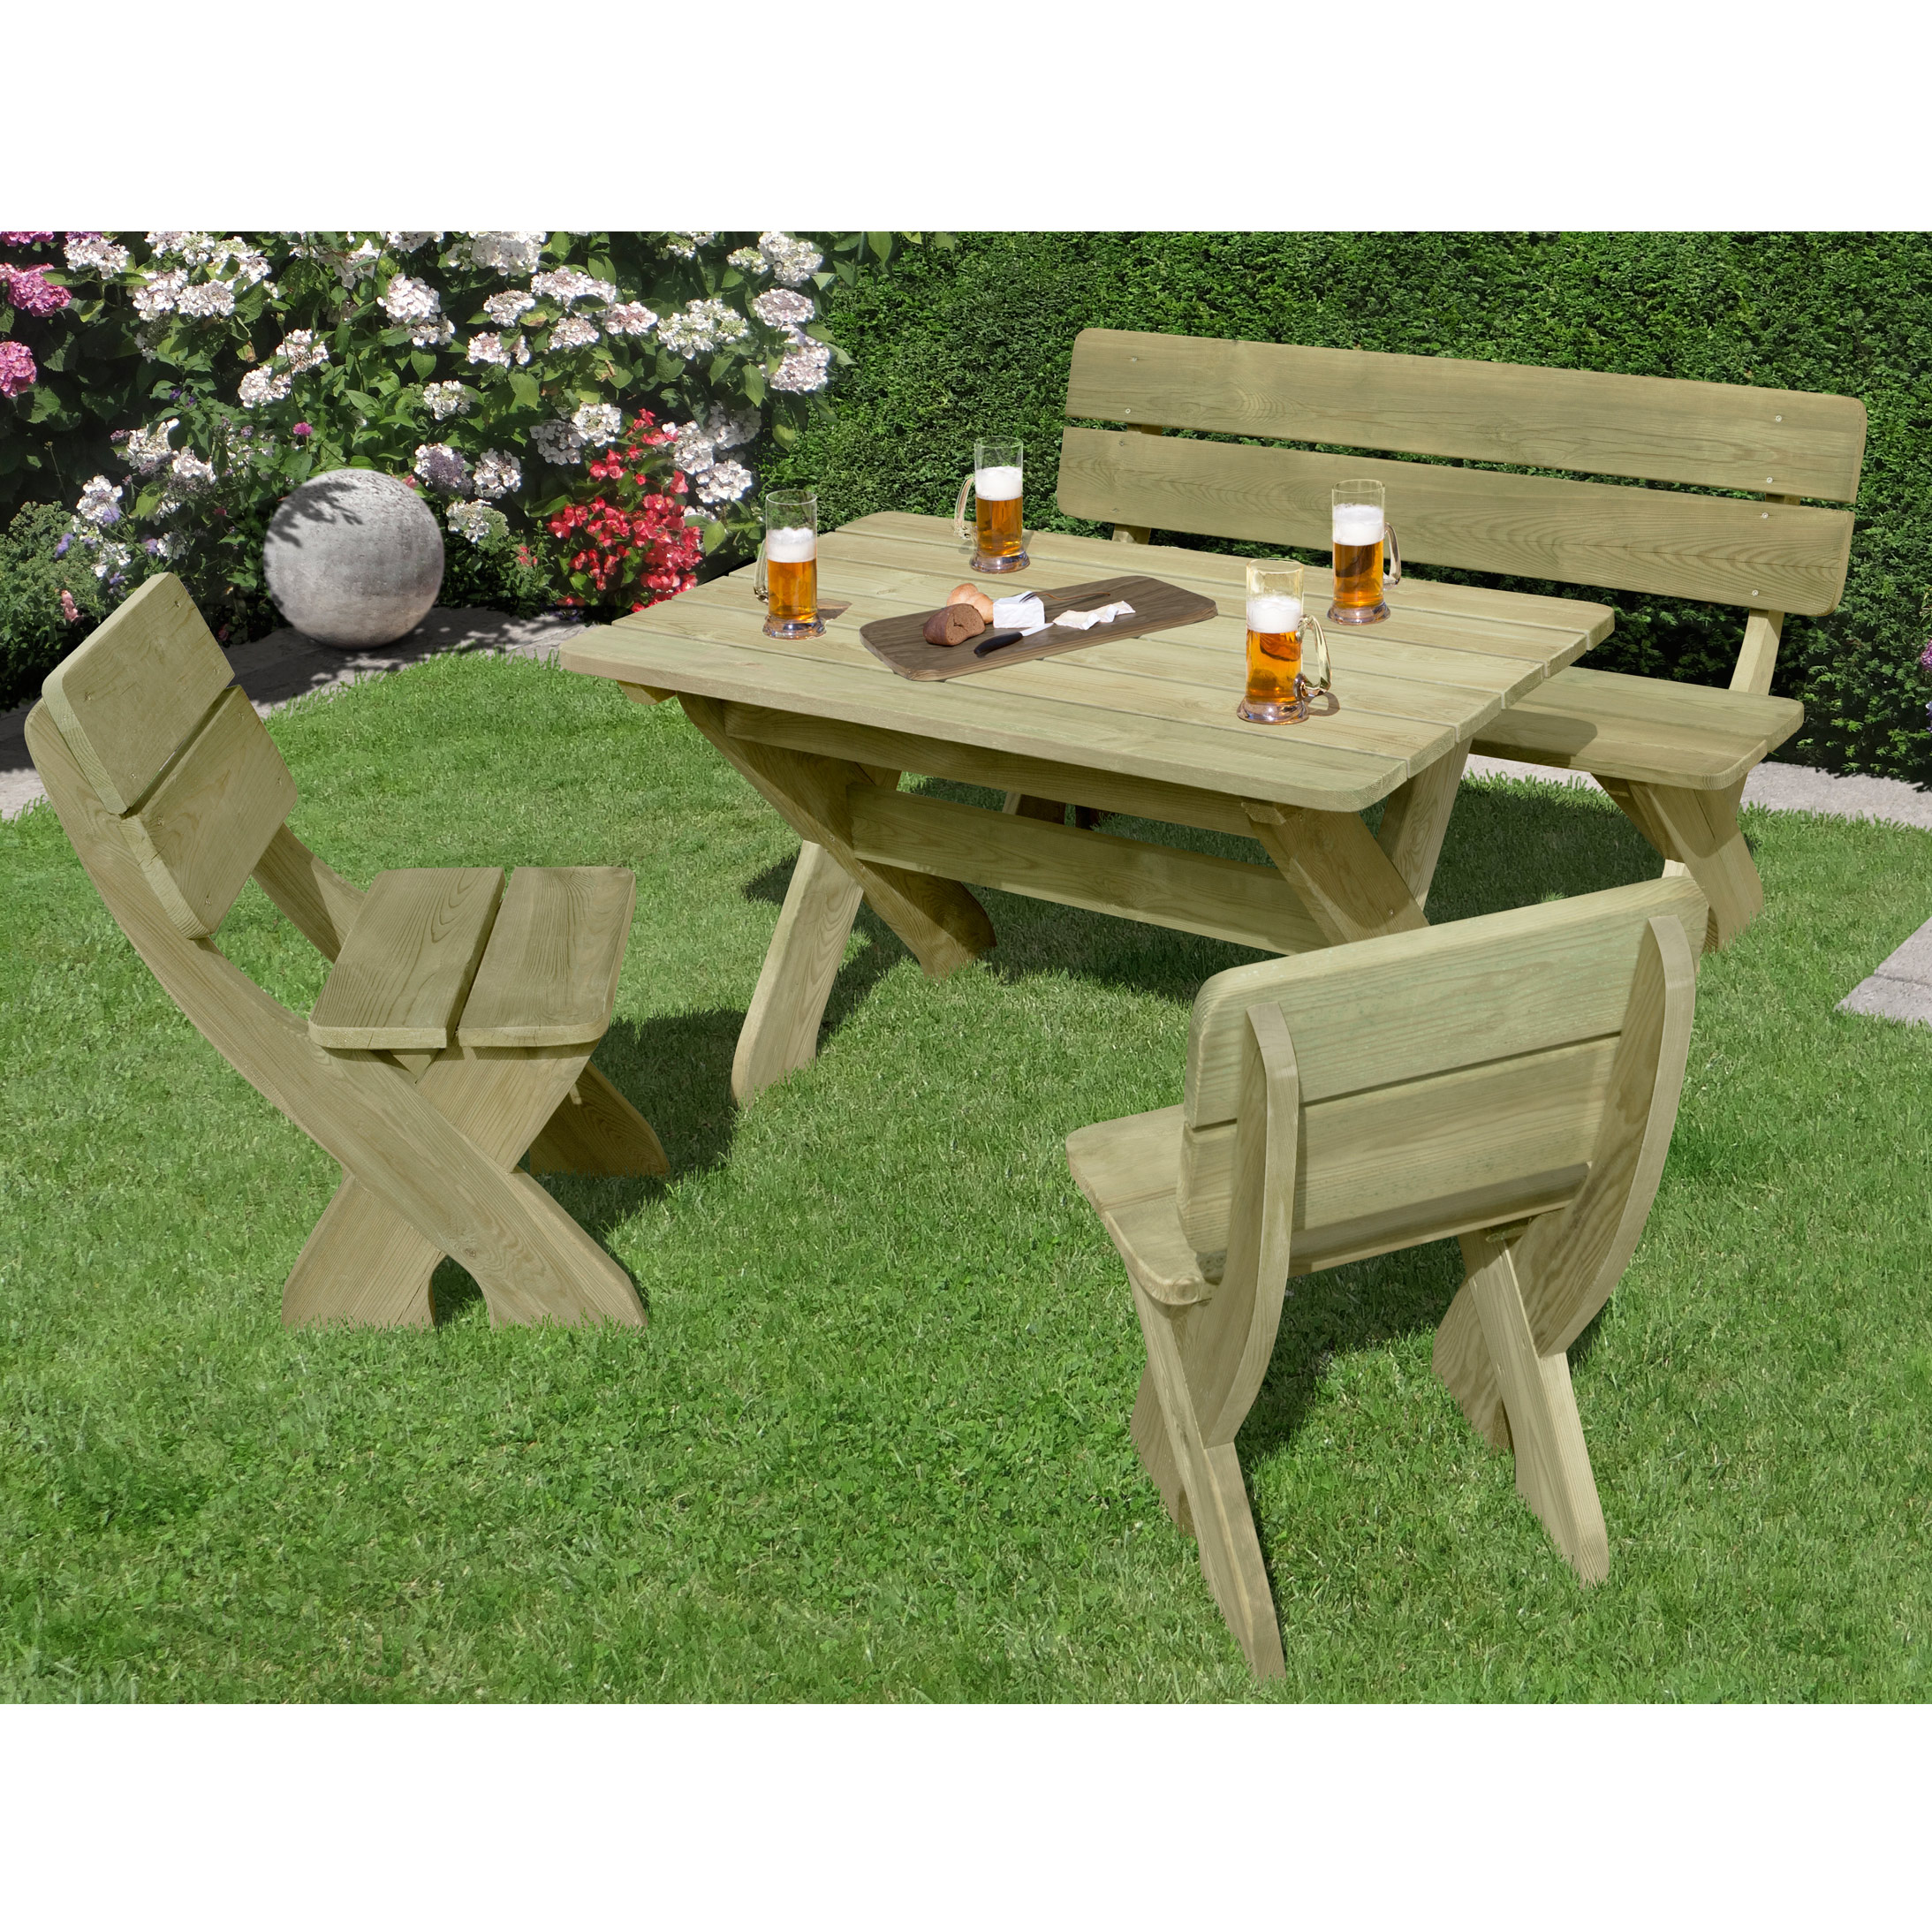 sitzgruppe toskana holz garten gartenm bel wetterfest ebay. Black Bedroom Furniture Sets. Home Design Ideas